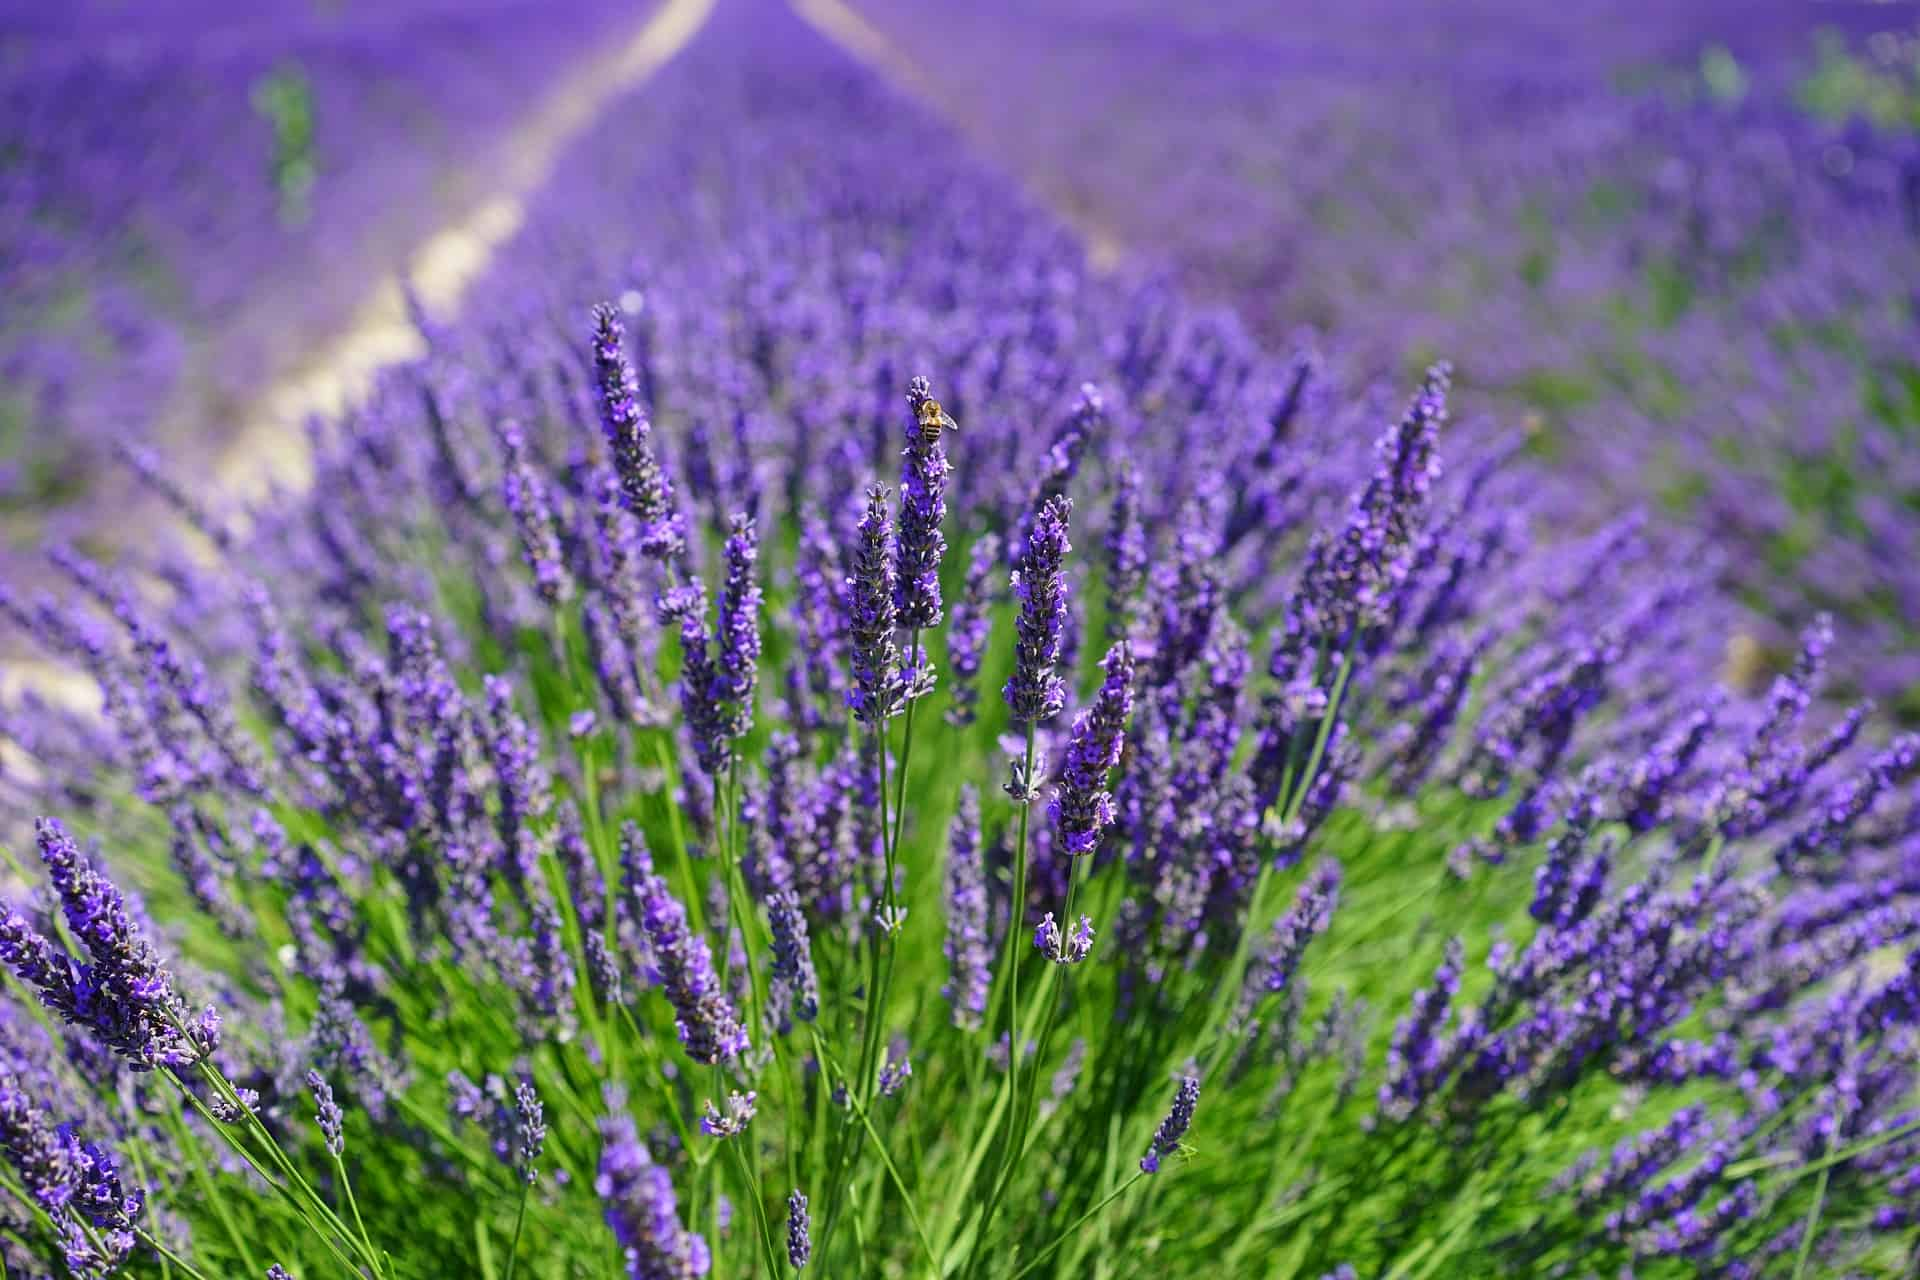 Linalool is found in Lavender